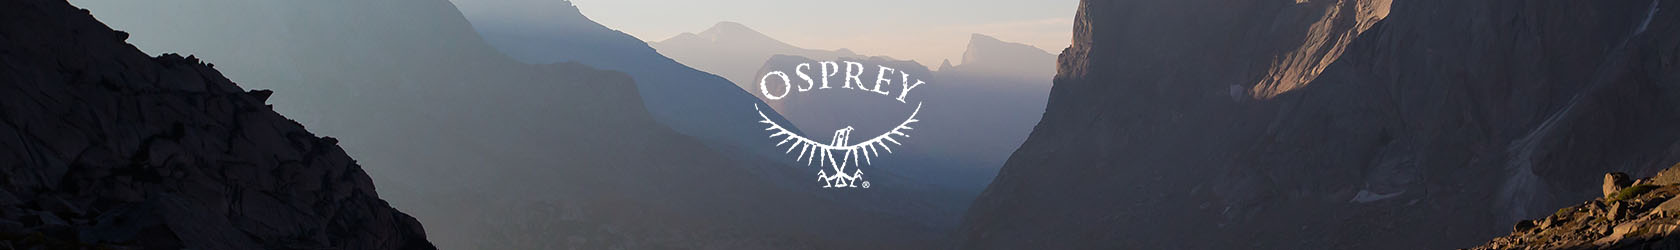 The Osprey logo in the middle of the image with mountains.